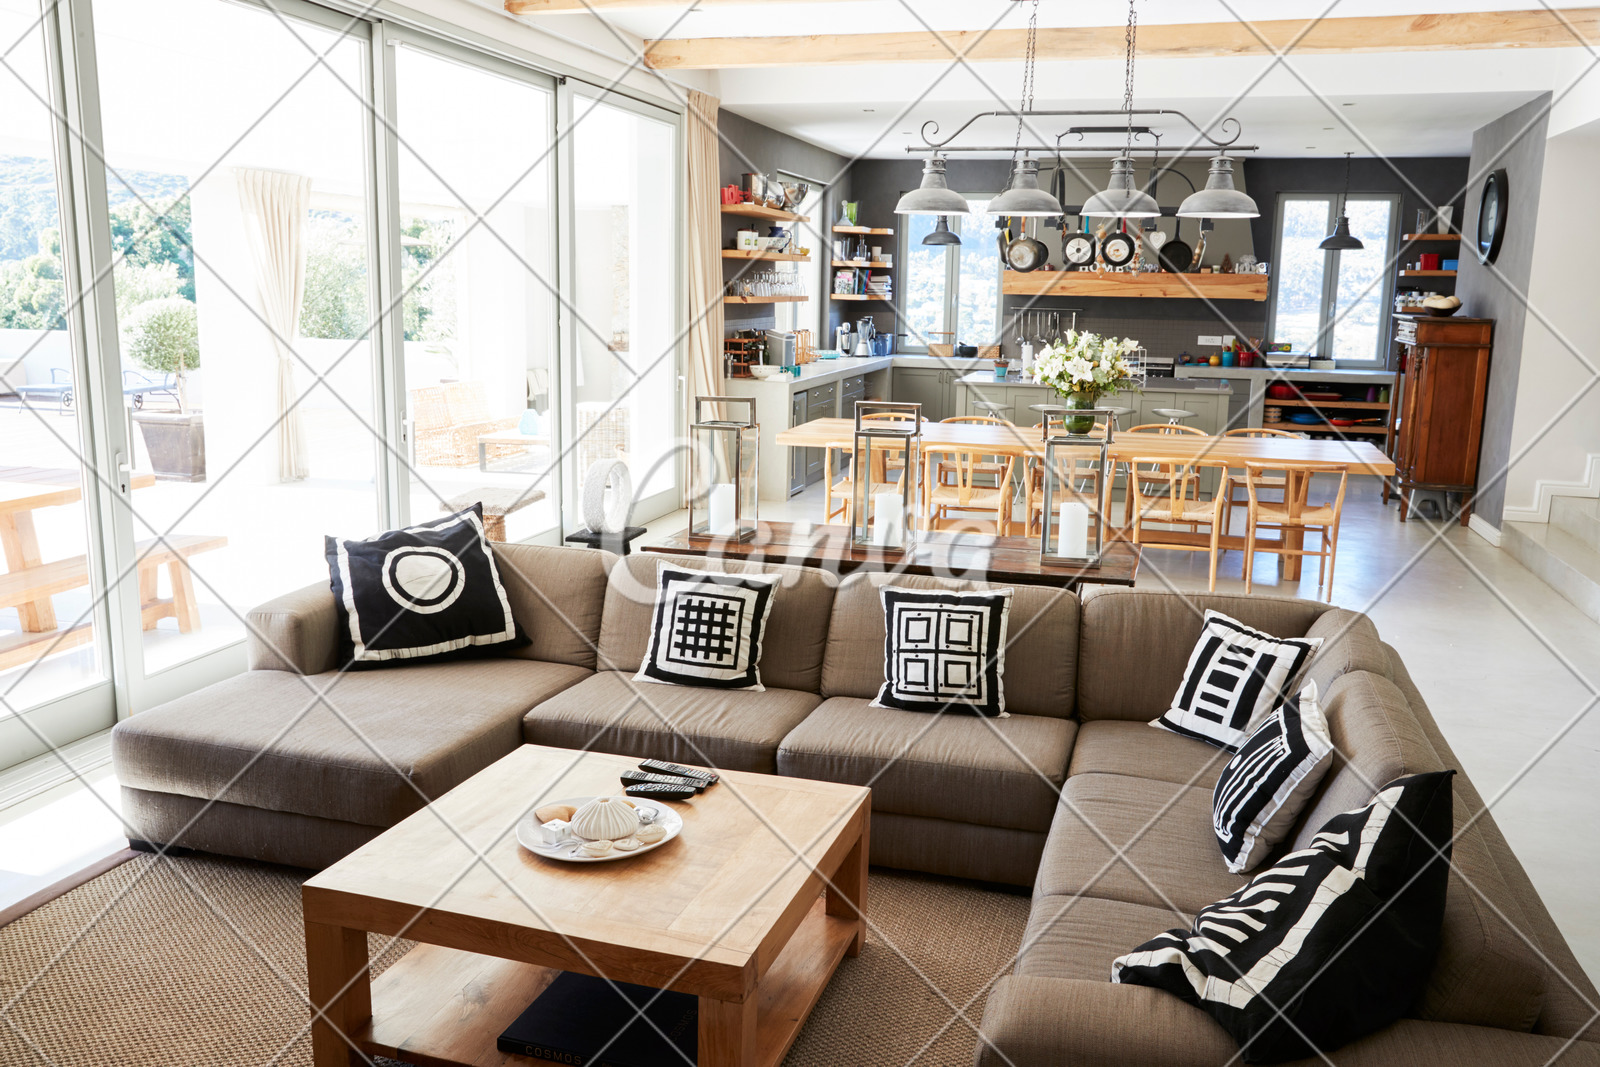 Home Interior With Open Plan Kitchen Lounge And Dining